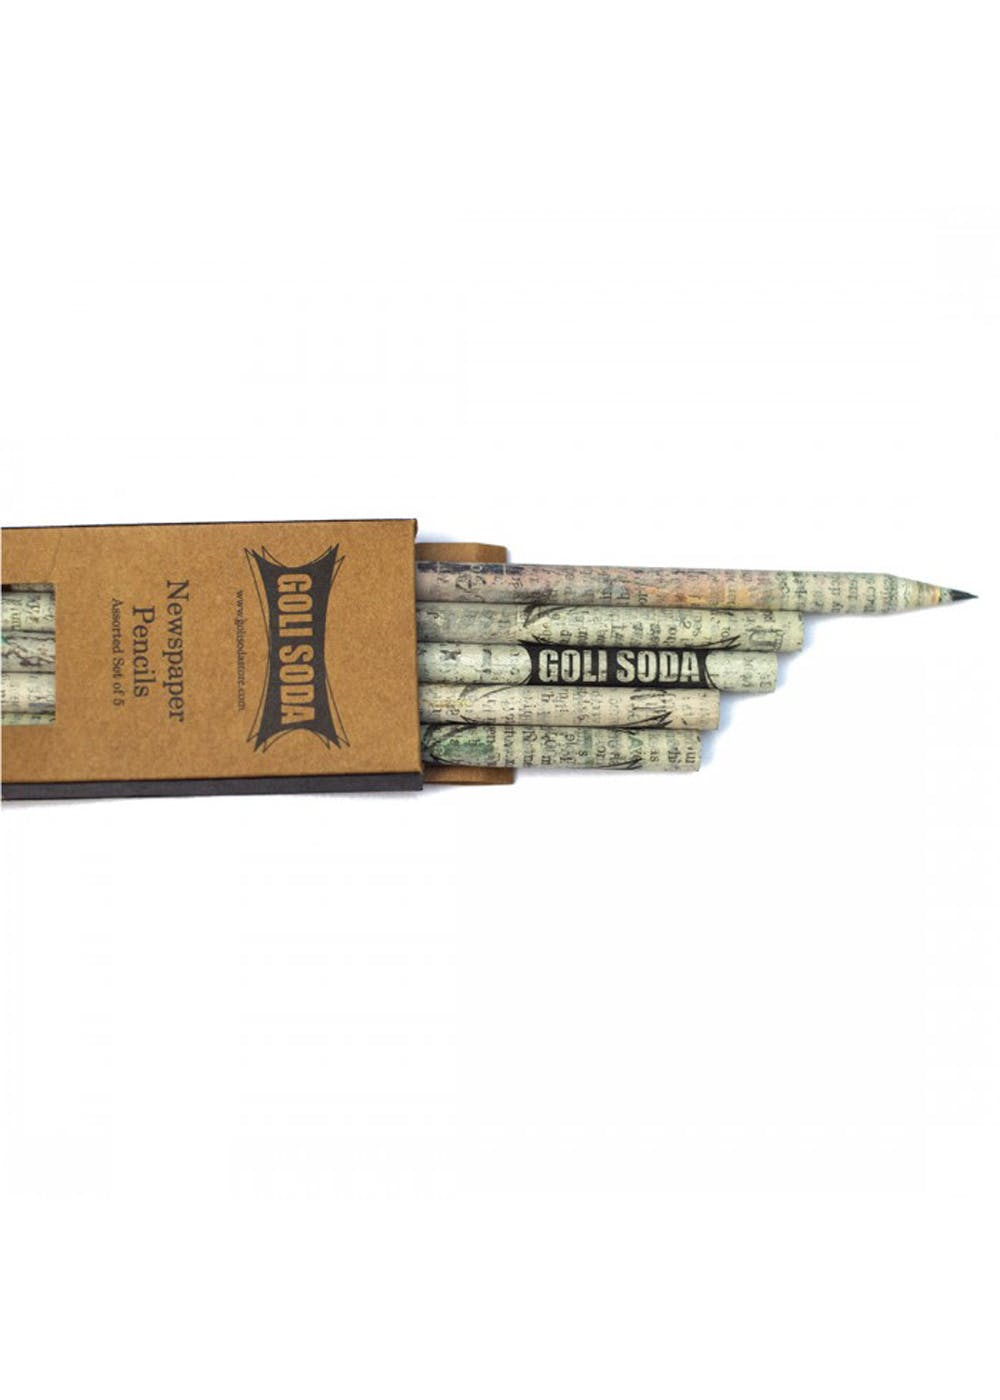 Upcycled Plain Newspaper Pencils - Goli Soda